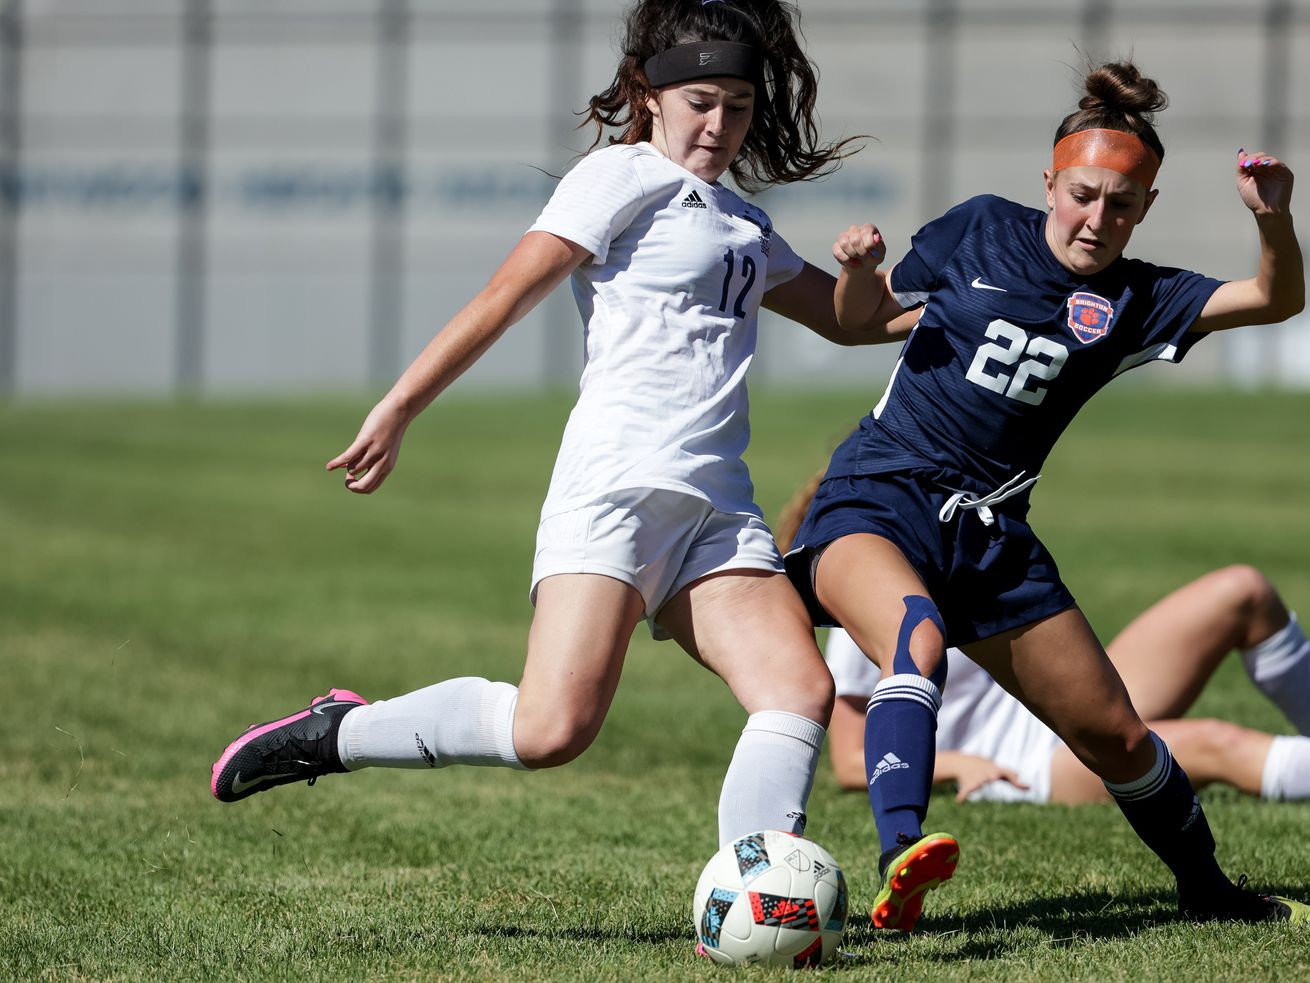 Skyline's Rozlin Gomez and Brighton's Eliza Hobby vie for control of the ball in a girls soccer game in Cottonwood Heights on Tuesday, Sept. 1, 2020.